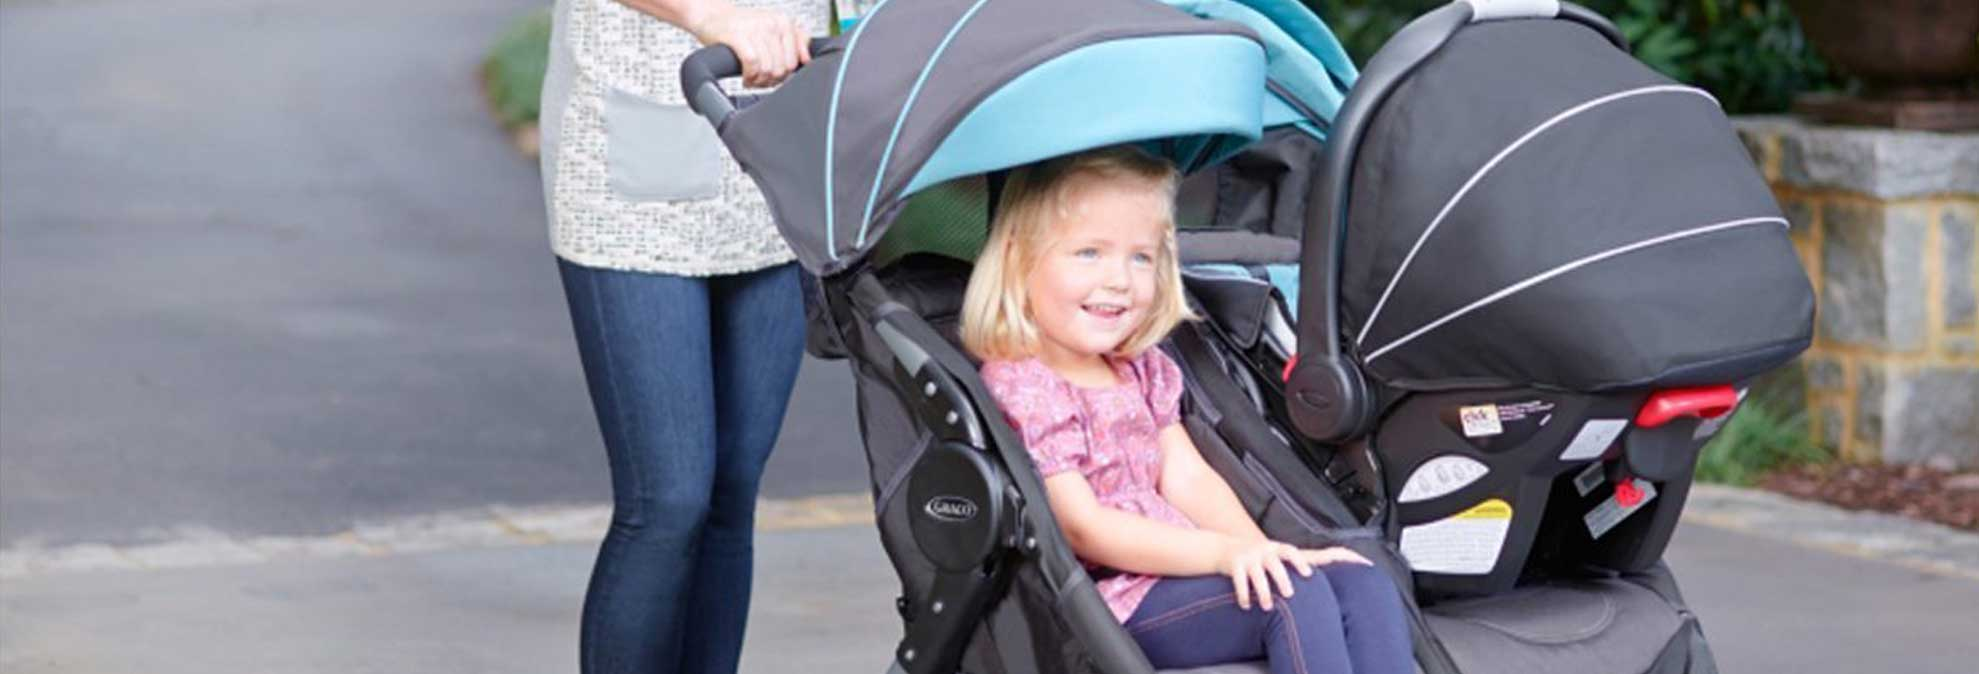 Baby cribs reviews consumer reports - 3 Questions To Ask Before Buying A Double Stroller Consumer Reports